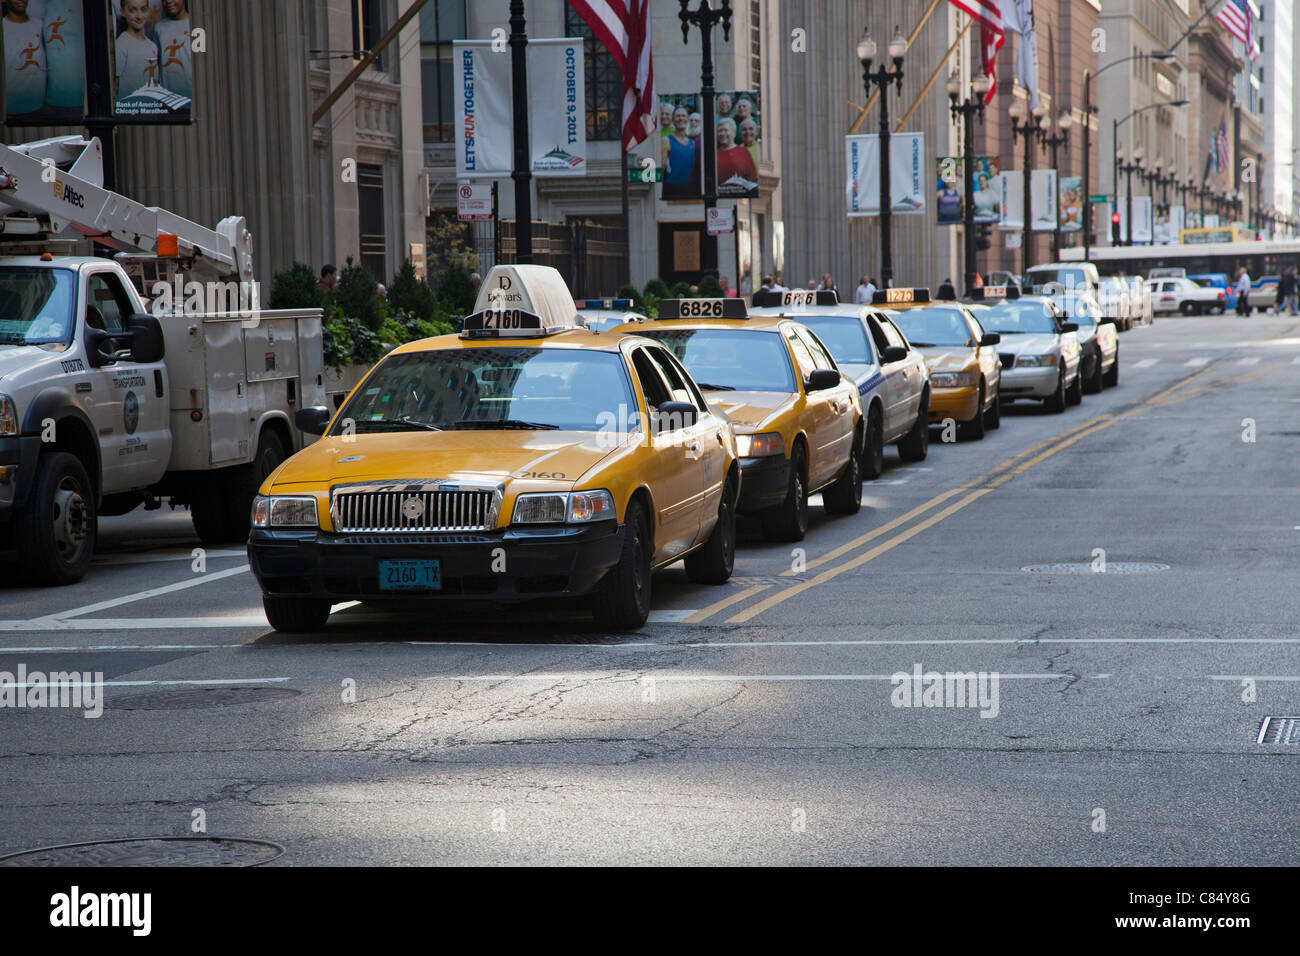 Chicago, Illinois - Taxicabs on LaSalle Street in the financial district. - Stock Image